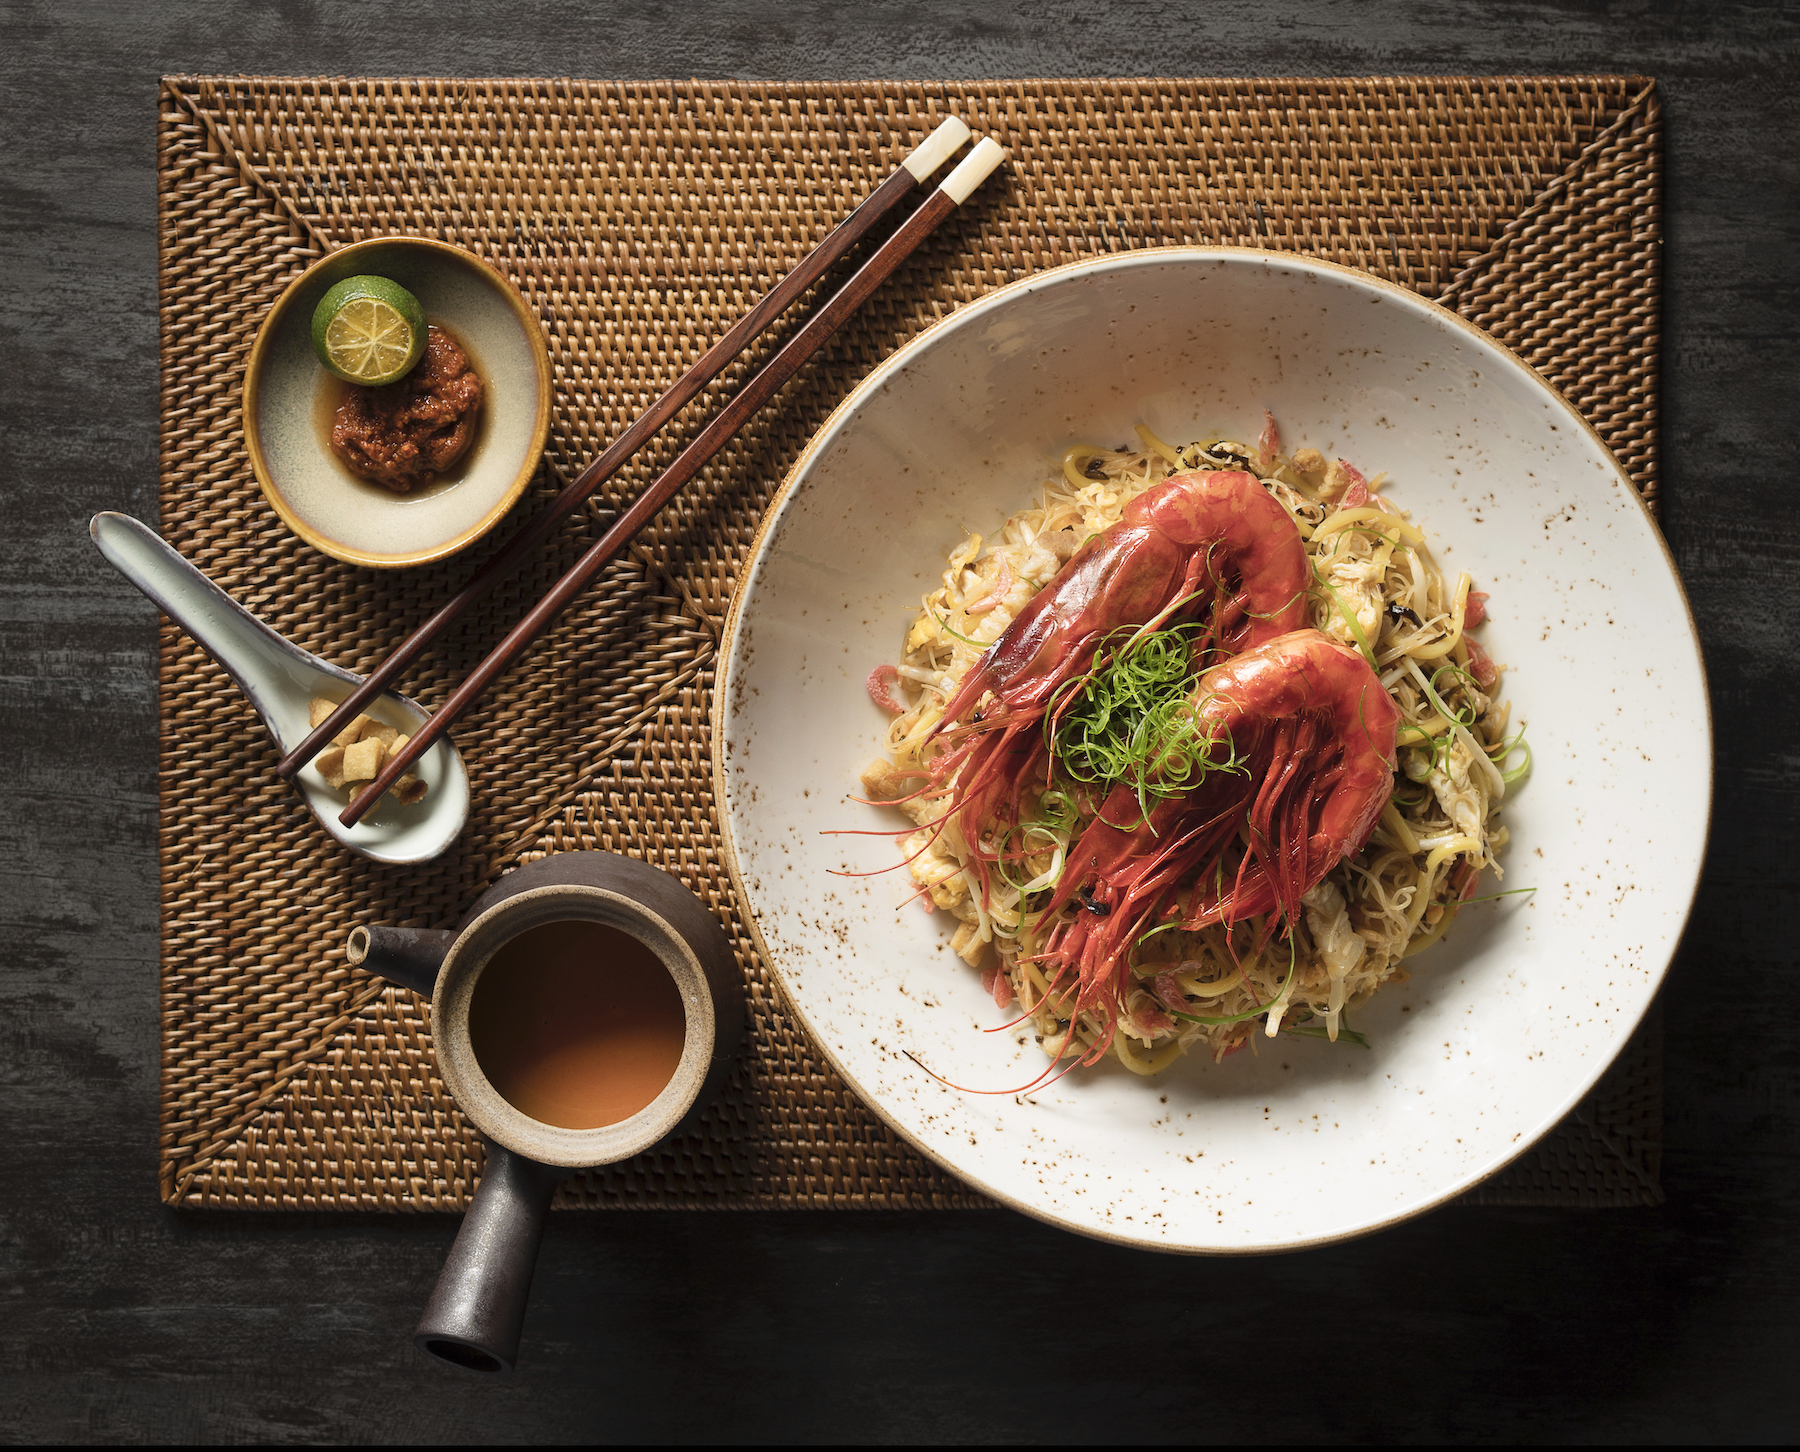 Singapore's top restaurants create a digital cookbook for charity